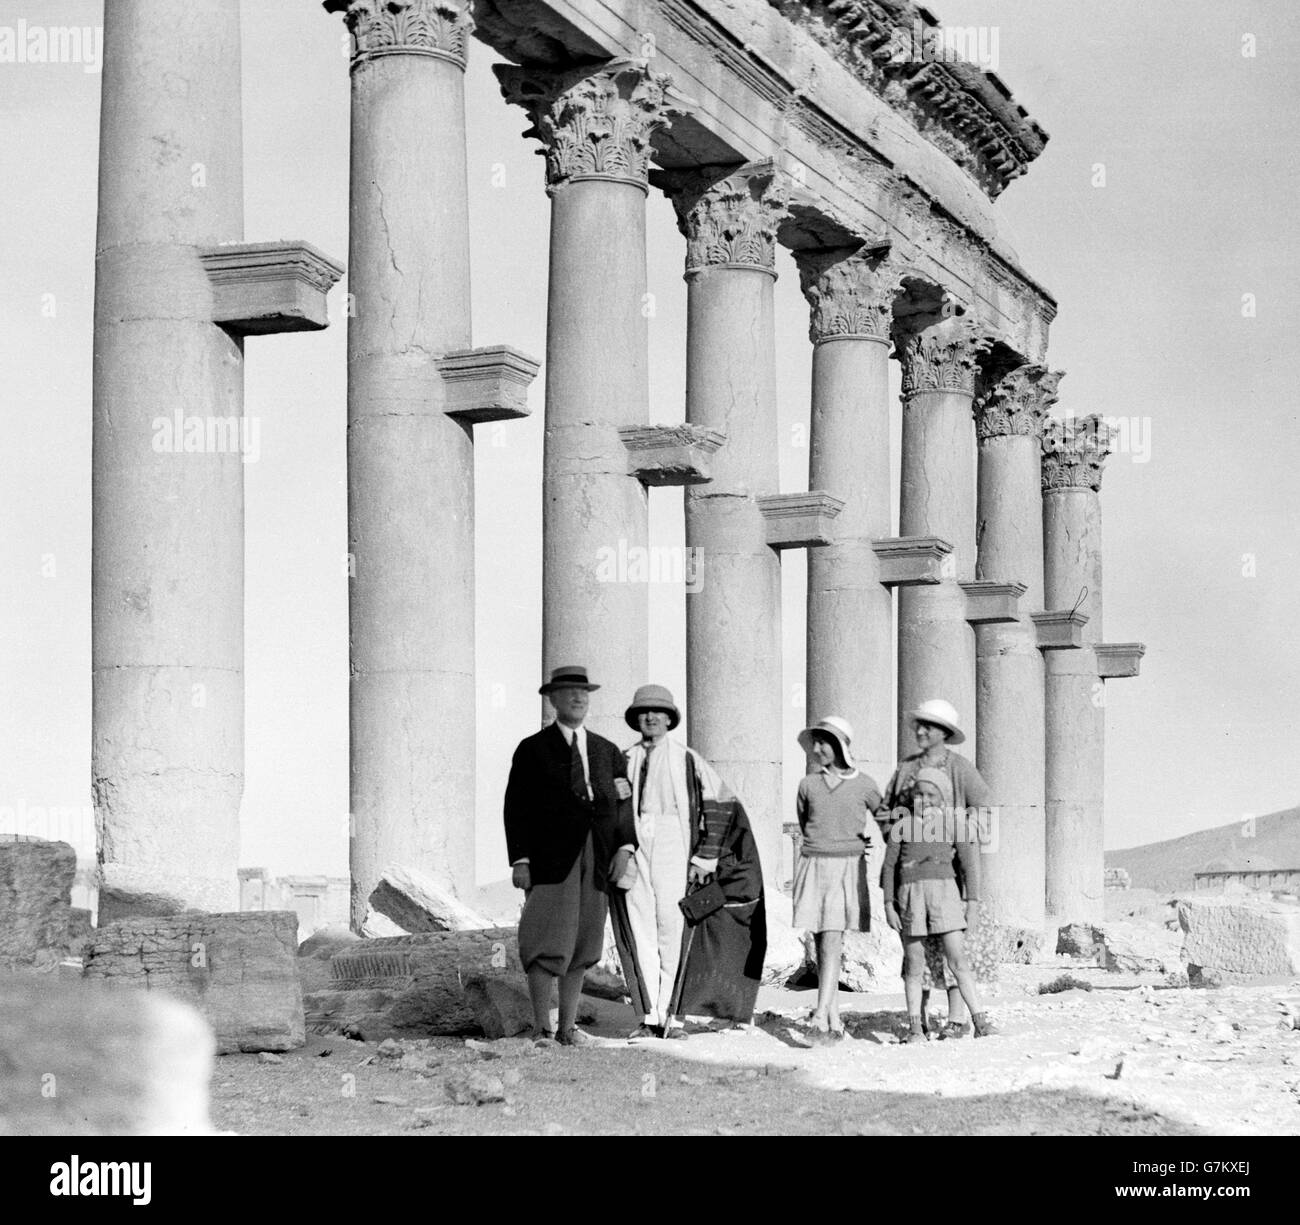 Palmyra, Syria. Visitors standing in front of part of The Great Colonnade c.1920-1933. - Stock Image